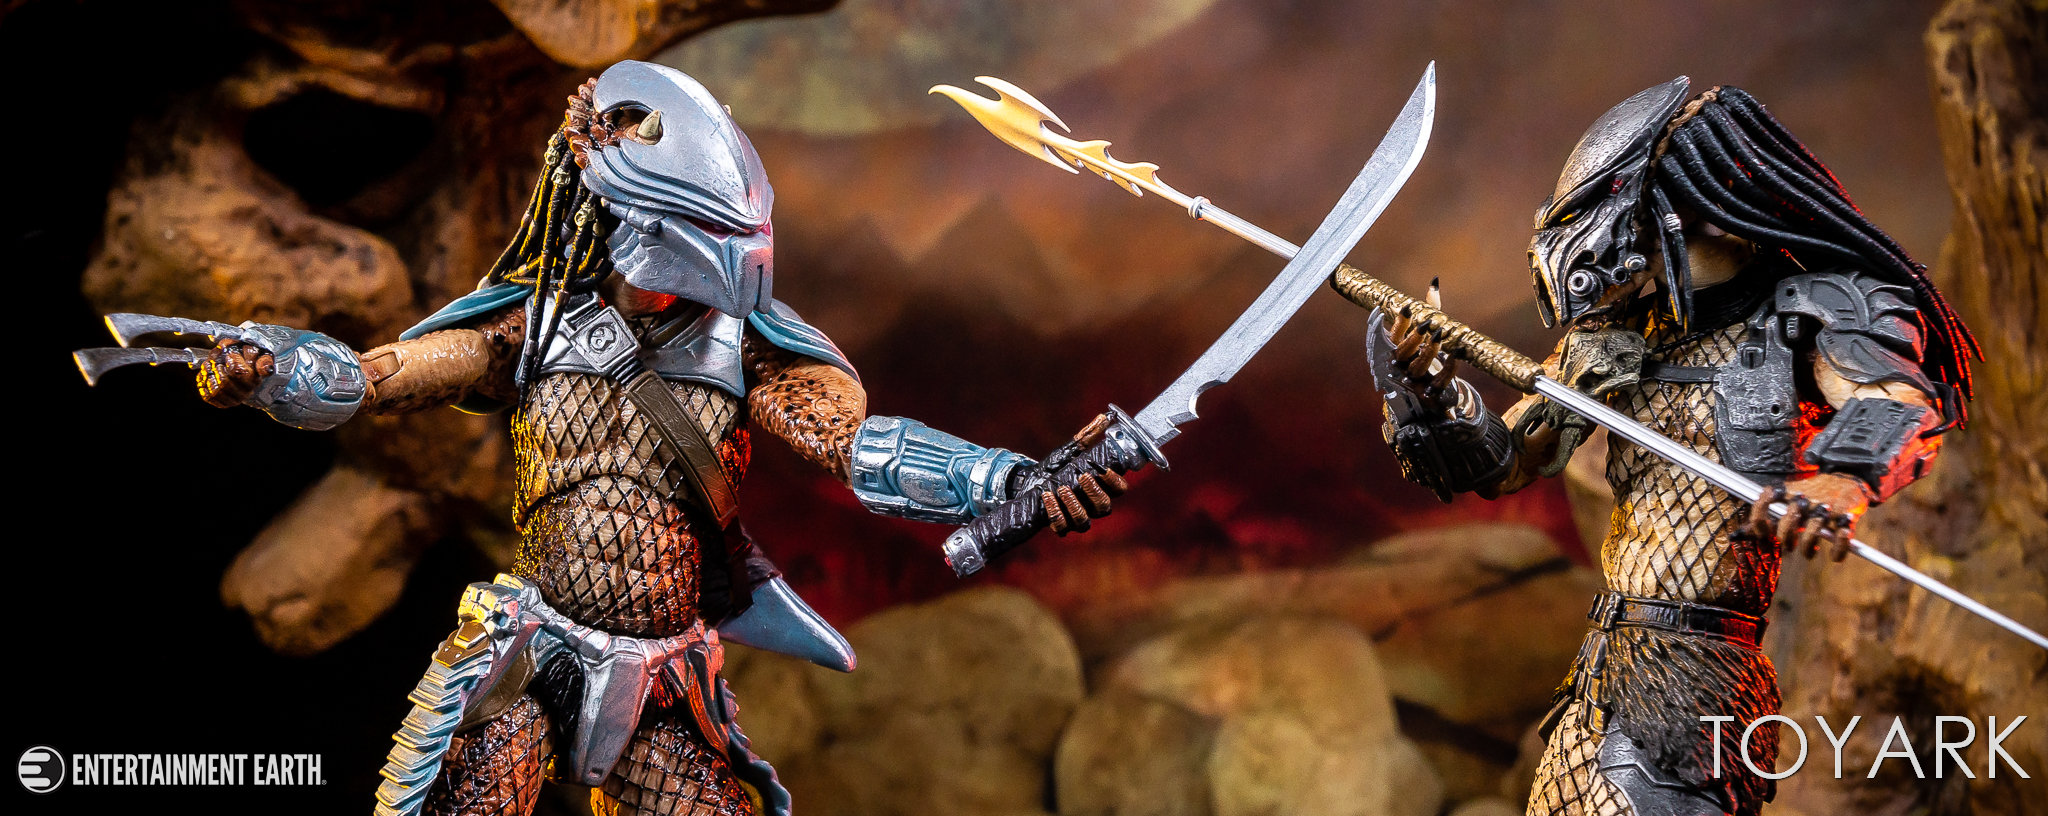 https://news.toyark.com/wp-content/uploads/sites/4/2019/01/Predator-NECA-Series-18-Figures-065.jpg